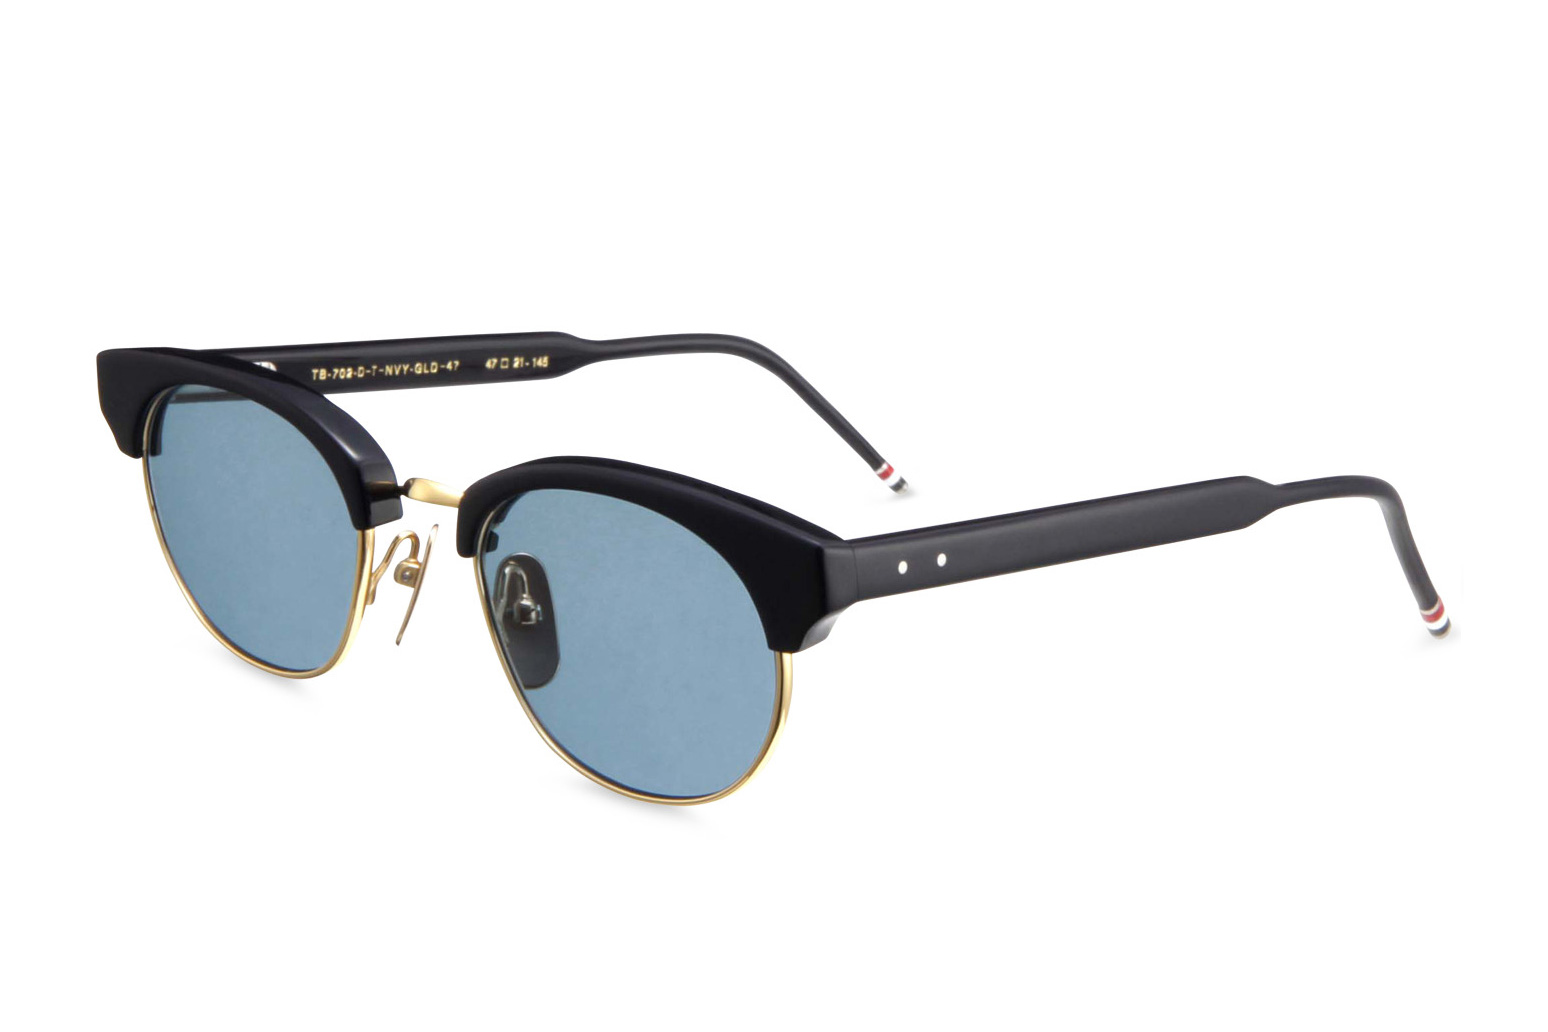 Round Gold Frame Sunglasses By Thom Browne : Thom Browne 2013 Spring/Summer Round Gold Frame Sunglasses ...